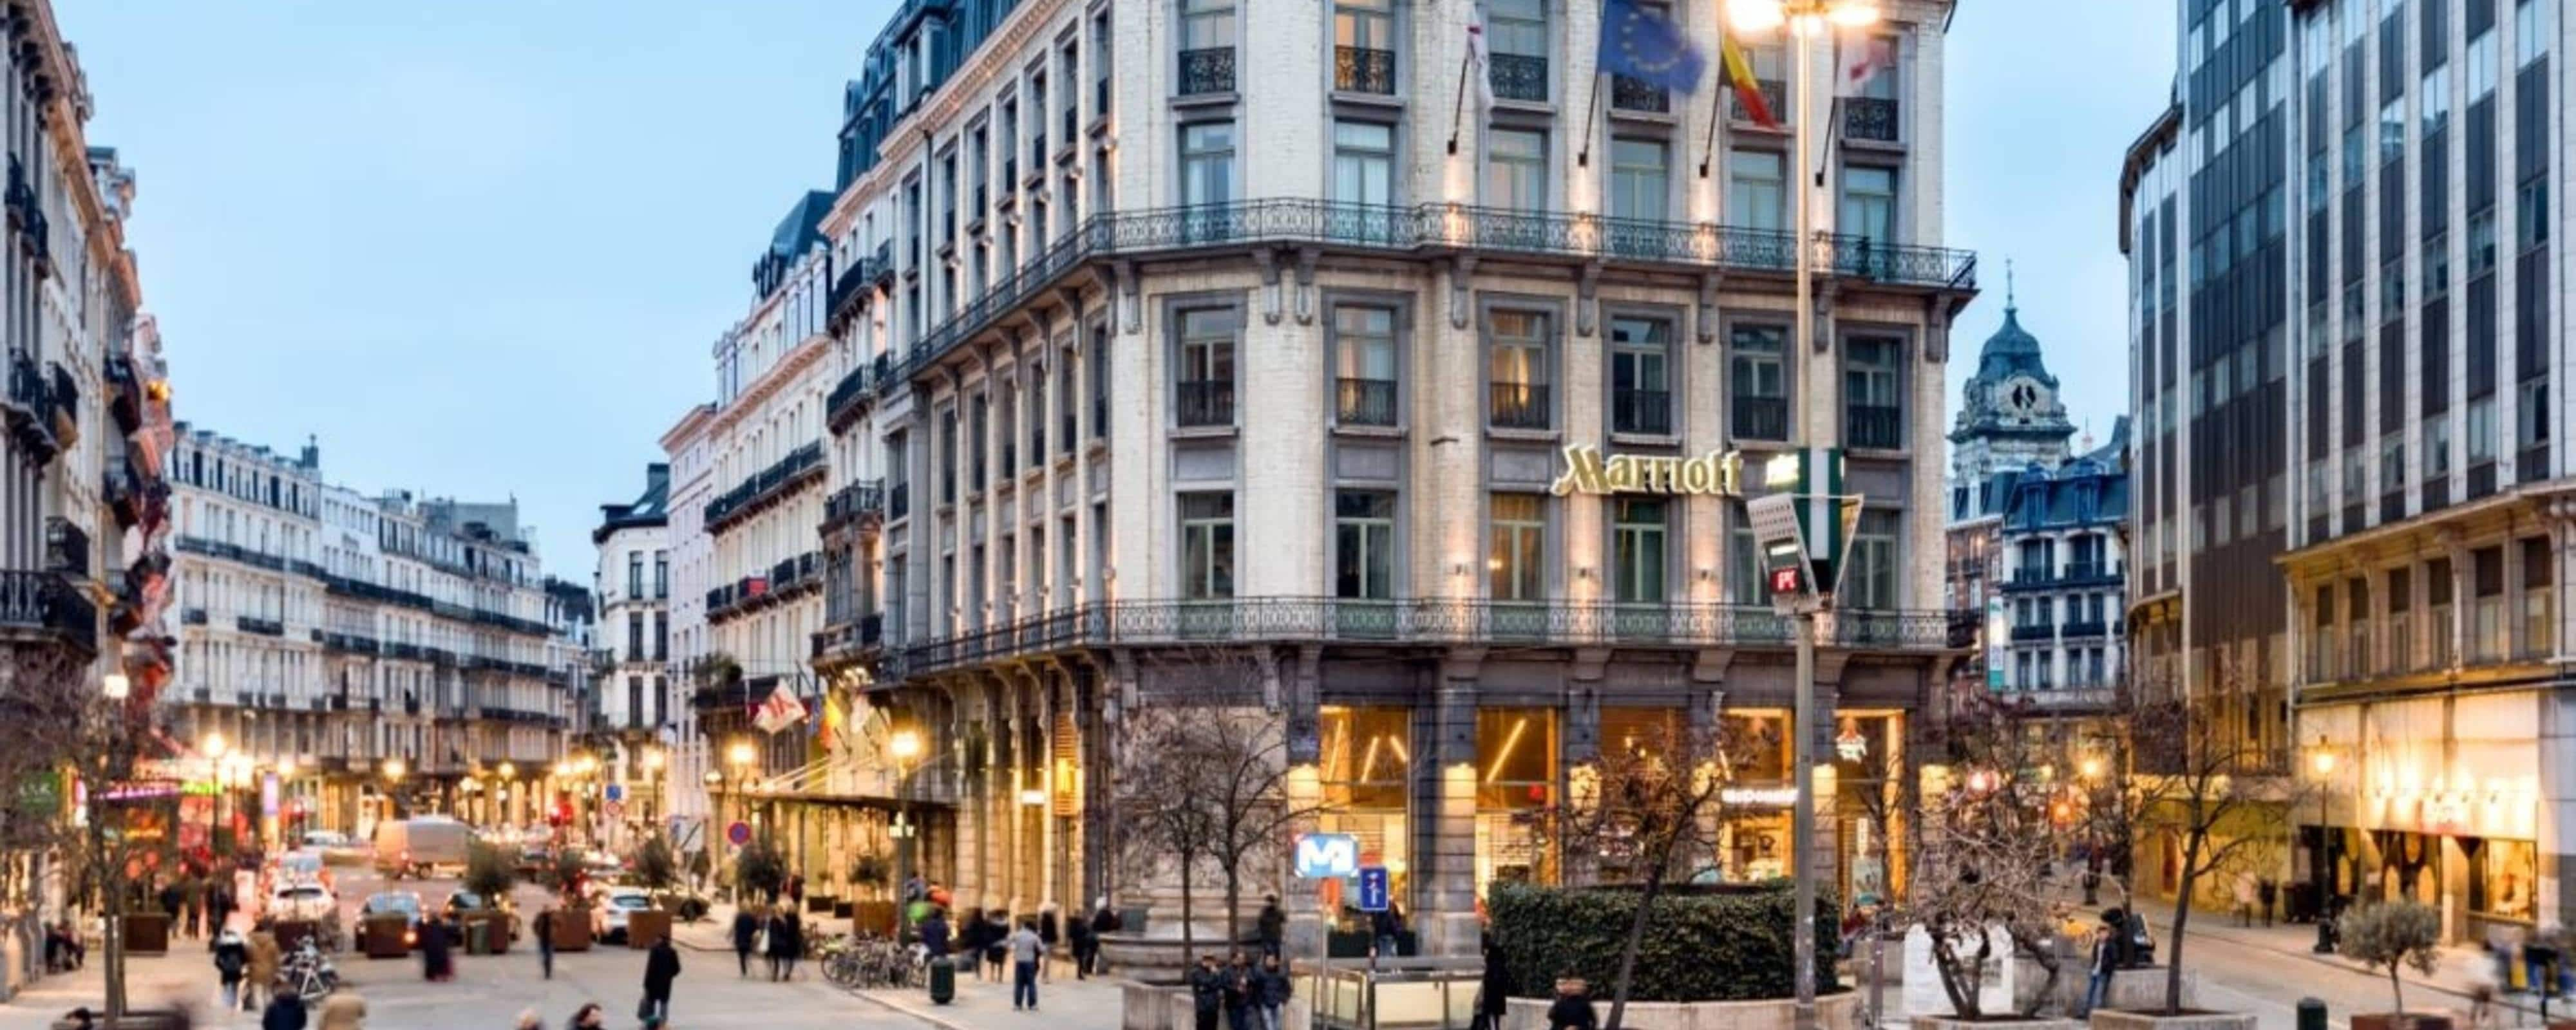 Hotel in Brussels, Belgium | Brussels Marriott Hotel Grand Place